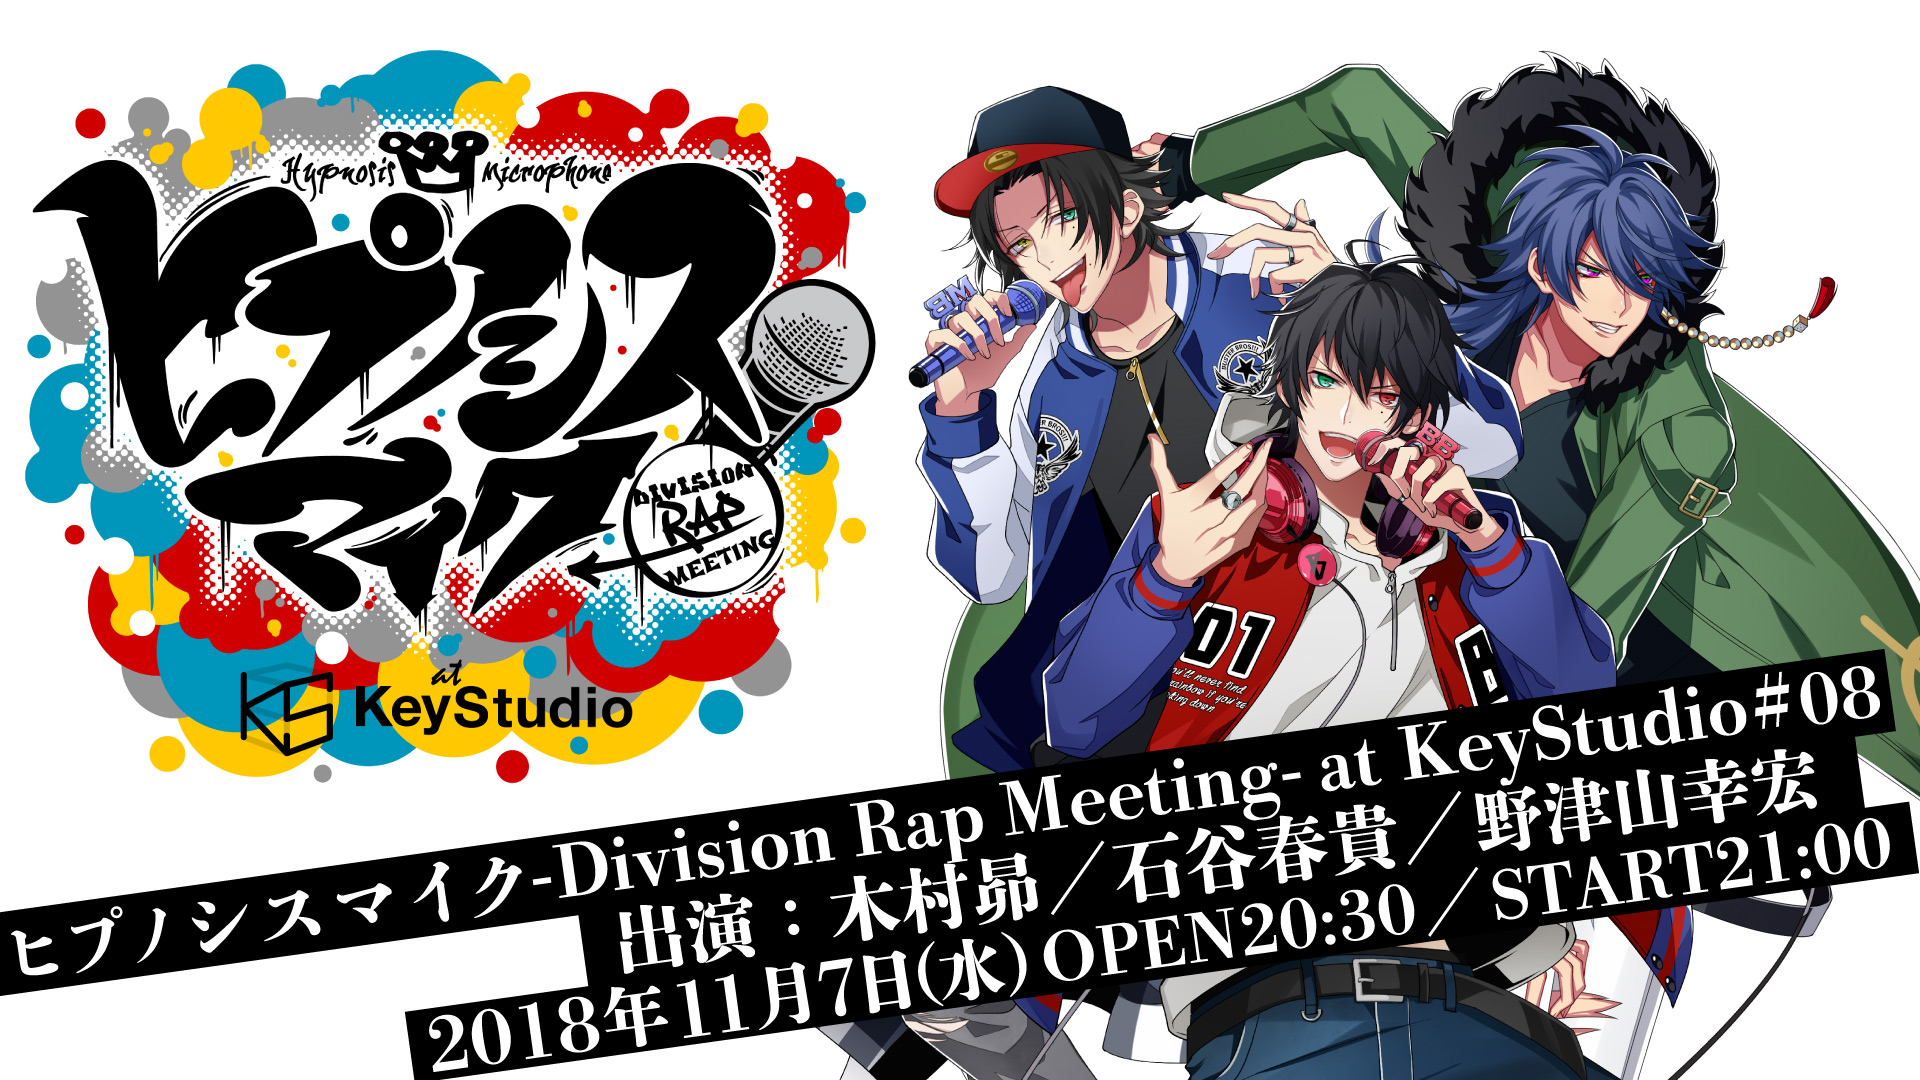 ヒプノシスマイク -Division Rap Meeting- at KeyStudio #08